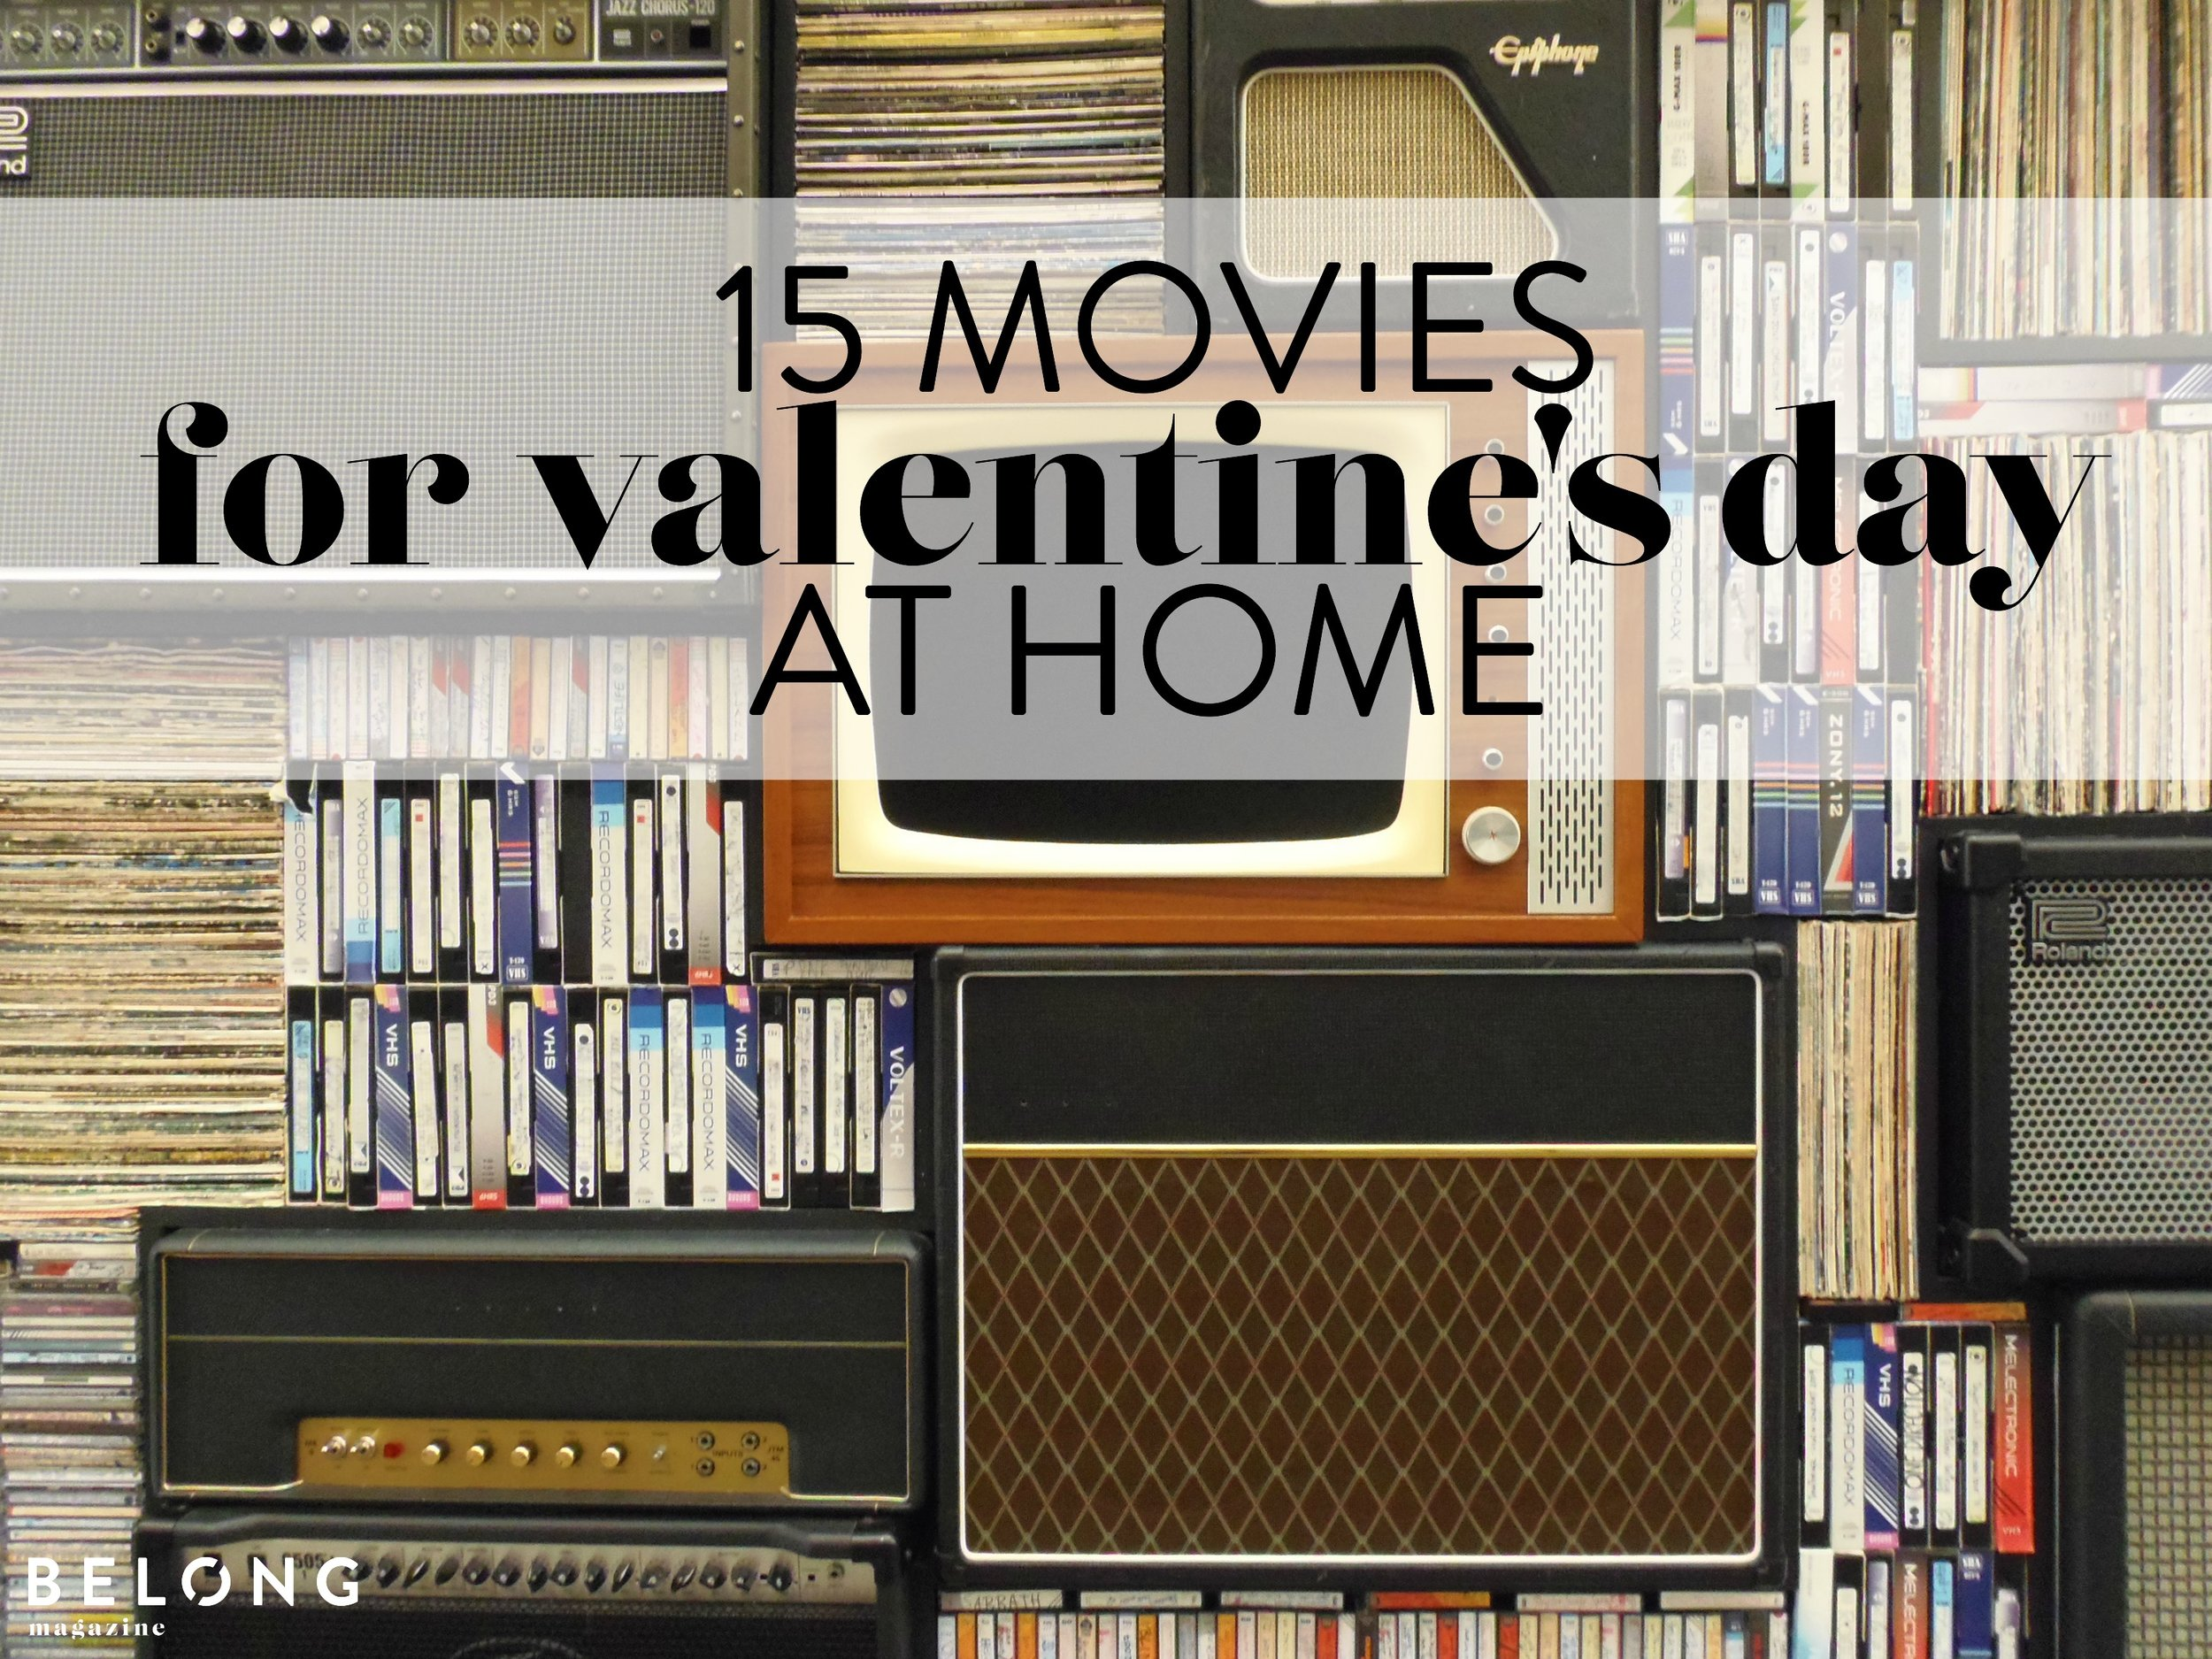 15 movies for valentine's day at home.jpg